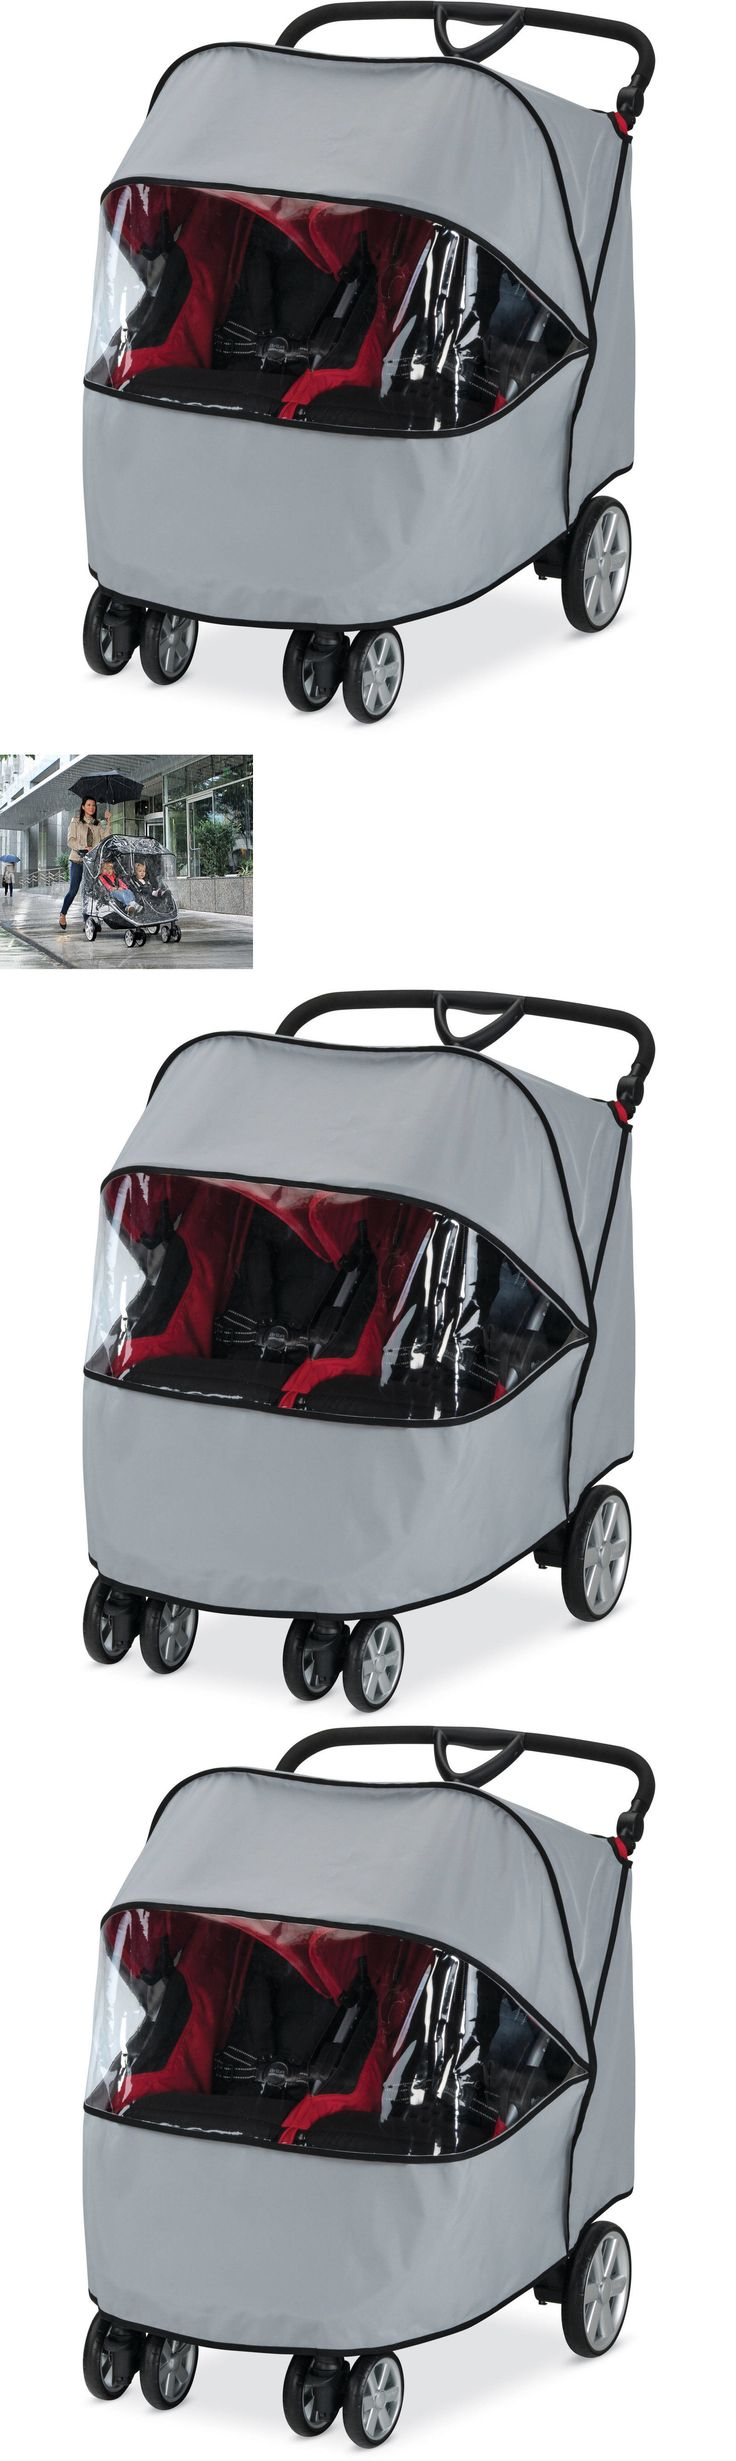 Cup Holders and Snack Trays 180913: Britax B Agile Double Rain Cover Easily Secured Using Hook And Loop Attachments -> BUY IT NOW ONLY: $286.91 on eBay!